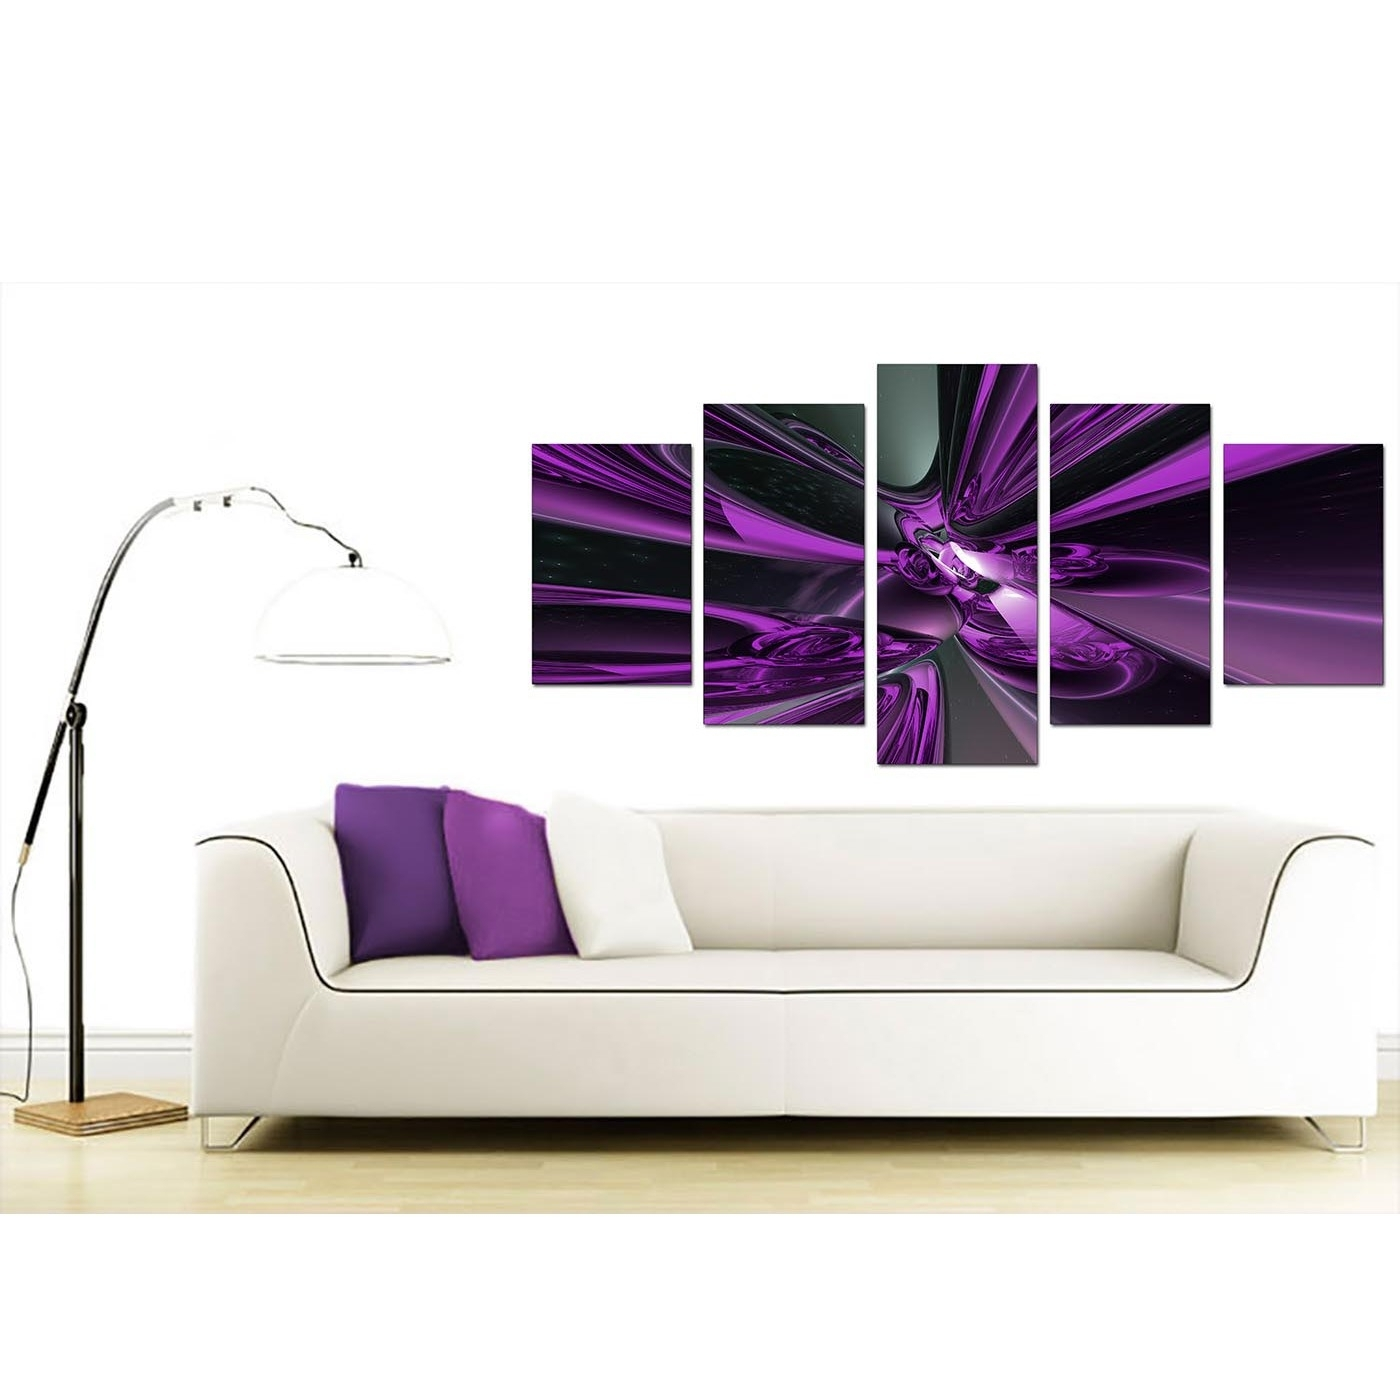 Extra Large Purple Abstract Canvas Prints Uk – 5 Piece Within Recent 5 Piece Wall Art Canvas (View 11 of 15)